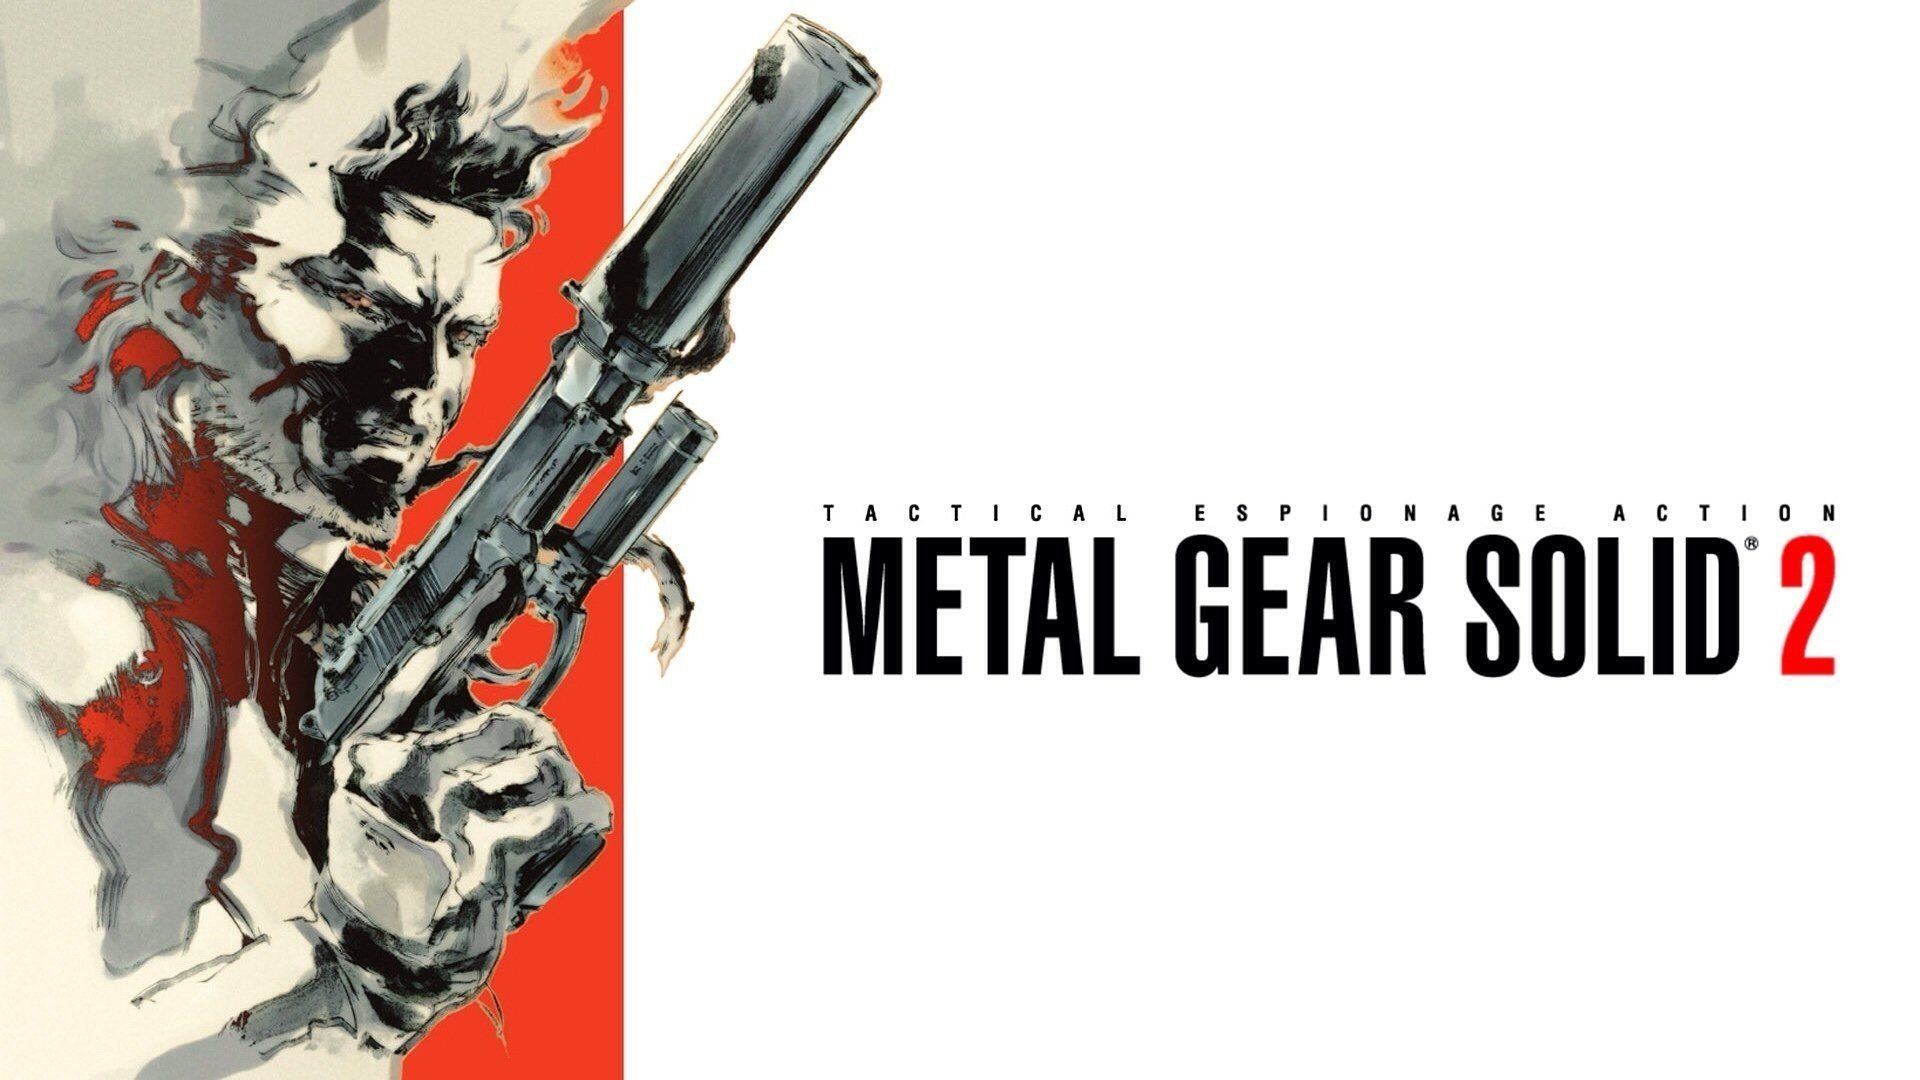 Metal Gear Solid 2 Wallpapers - Top Free Metal Gear Solid 2 Backgrounds -  WallpaperAccess